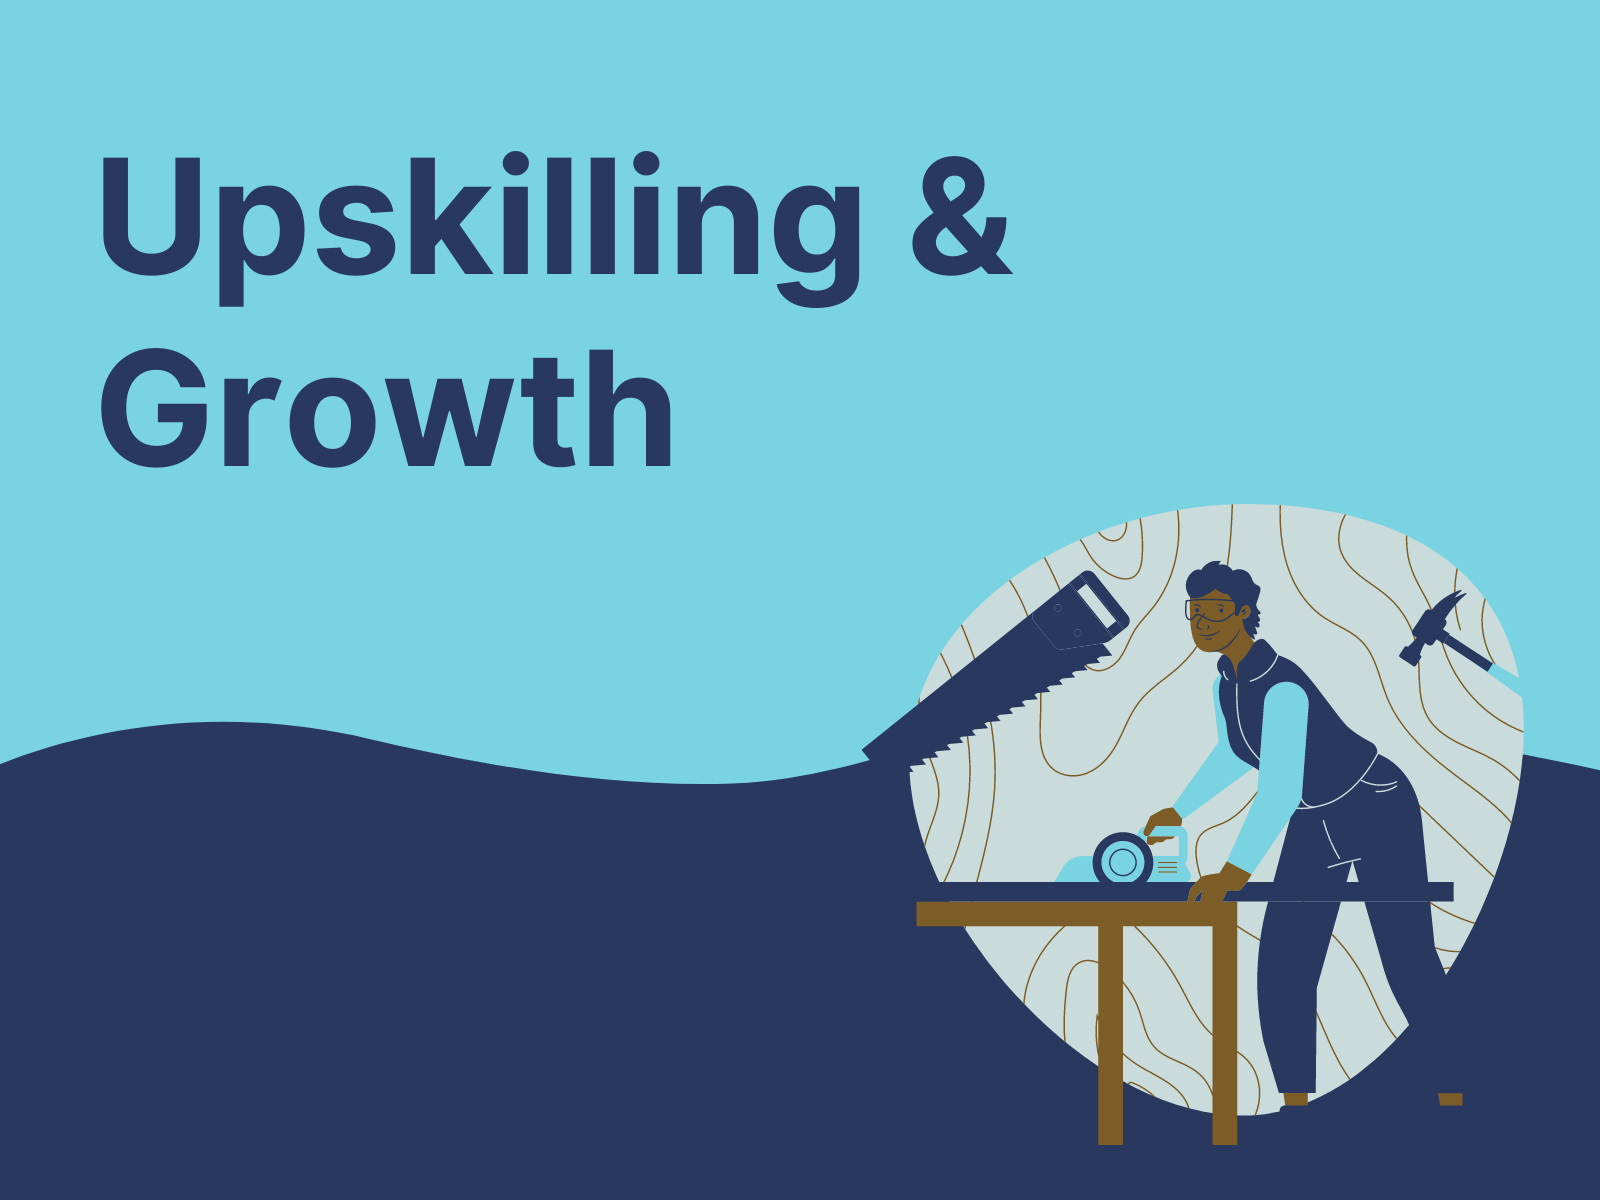 Upskilling and Growth